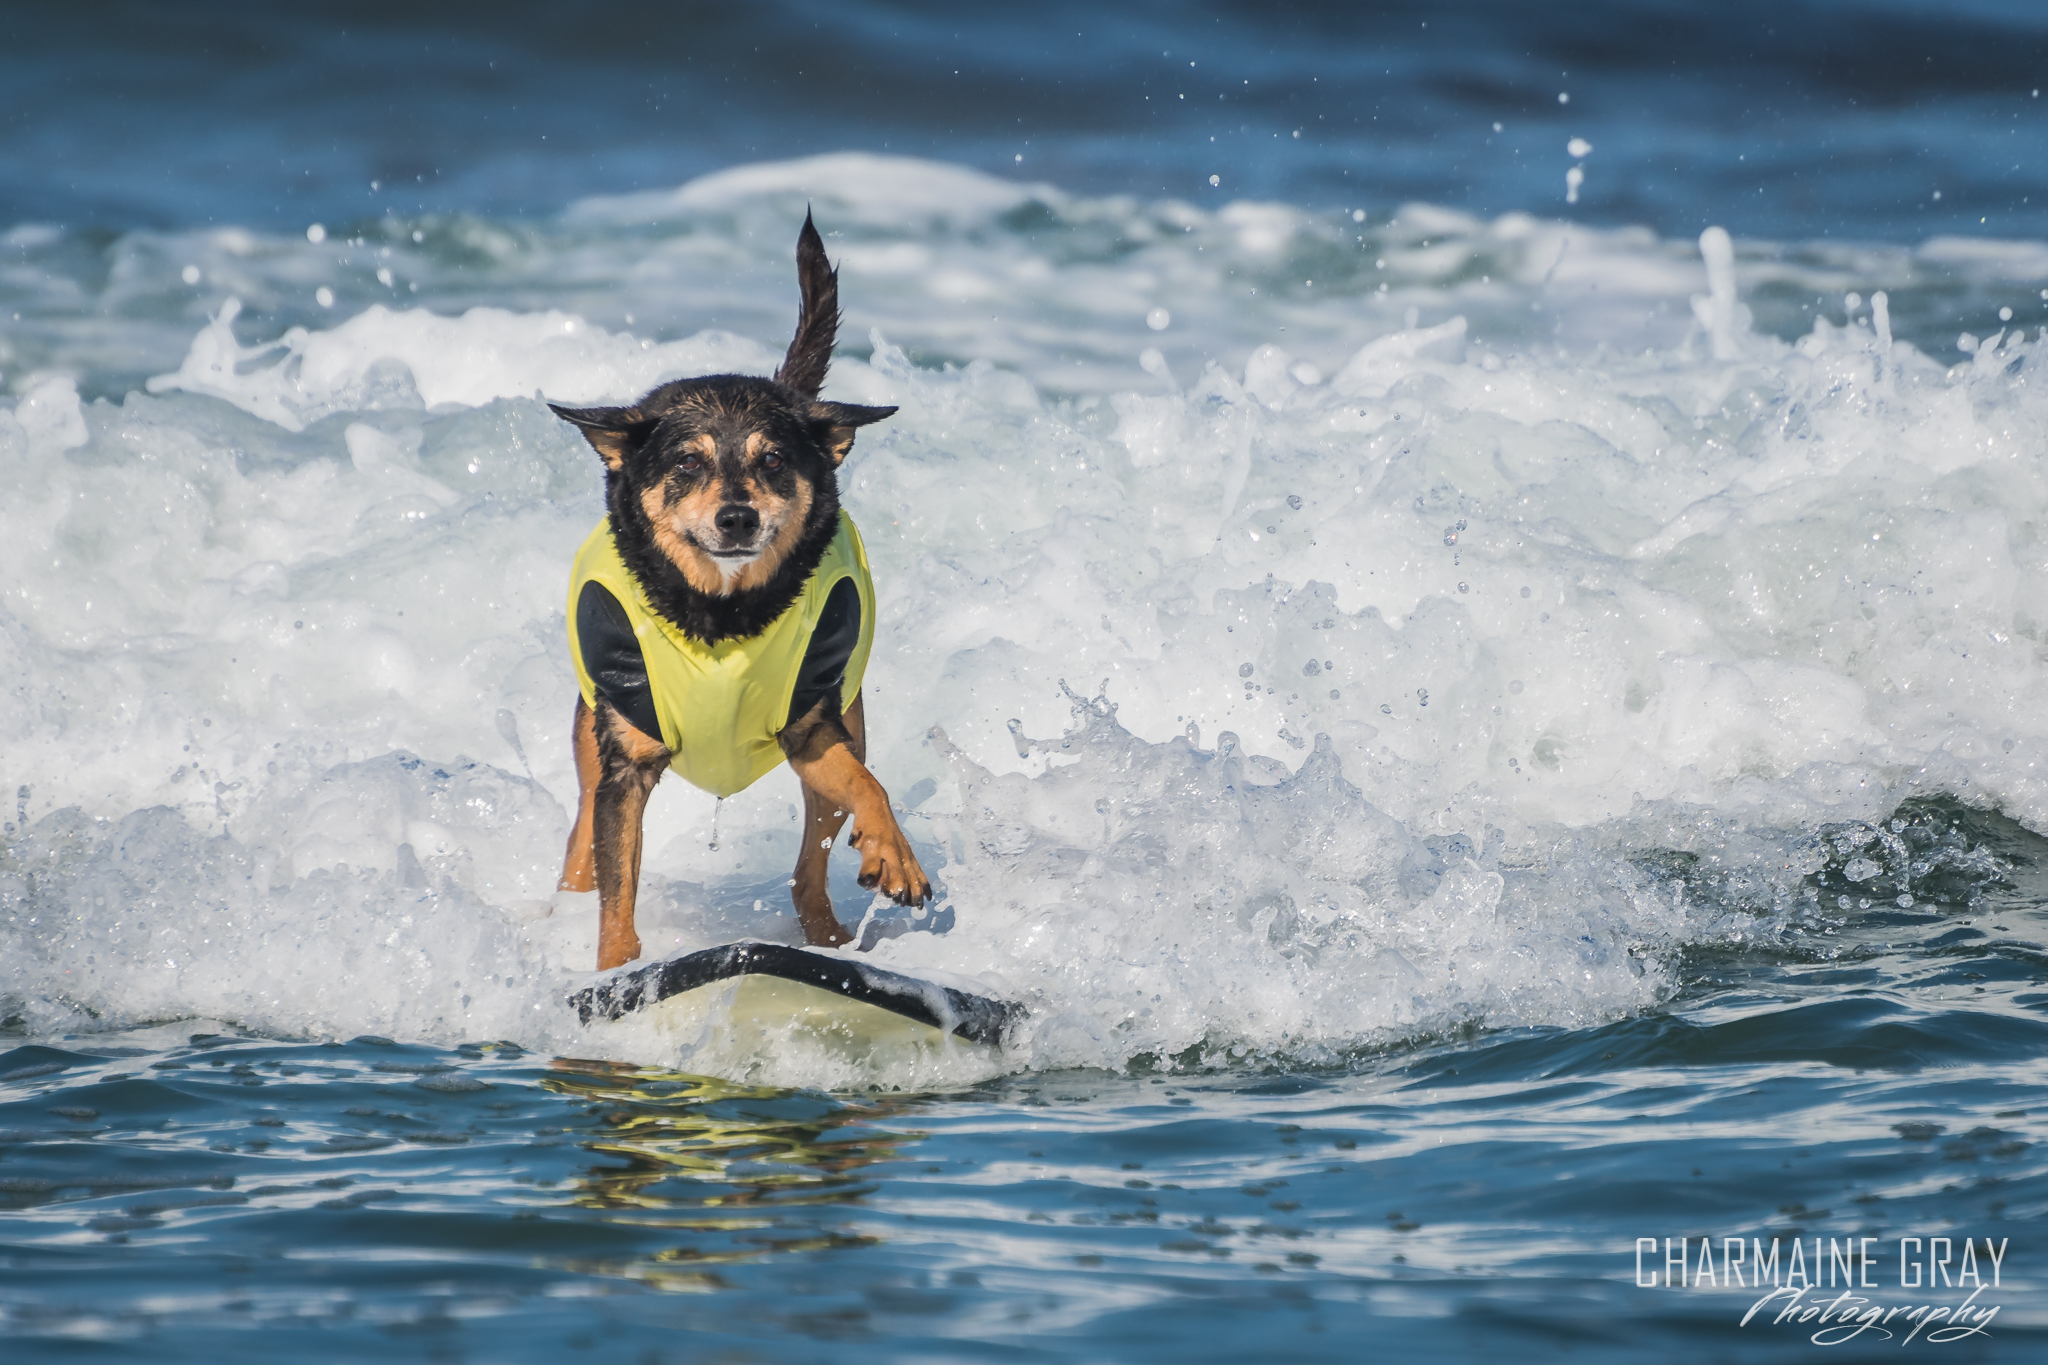 pet photographer, pet photography, pet portrait, pet, animal, charmaine gray photography, charmaine gray pet photography, san diego,dog,canine,california,surf,surfing,abbie surfs, australian kelpie